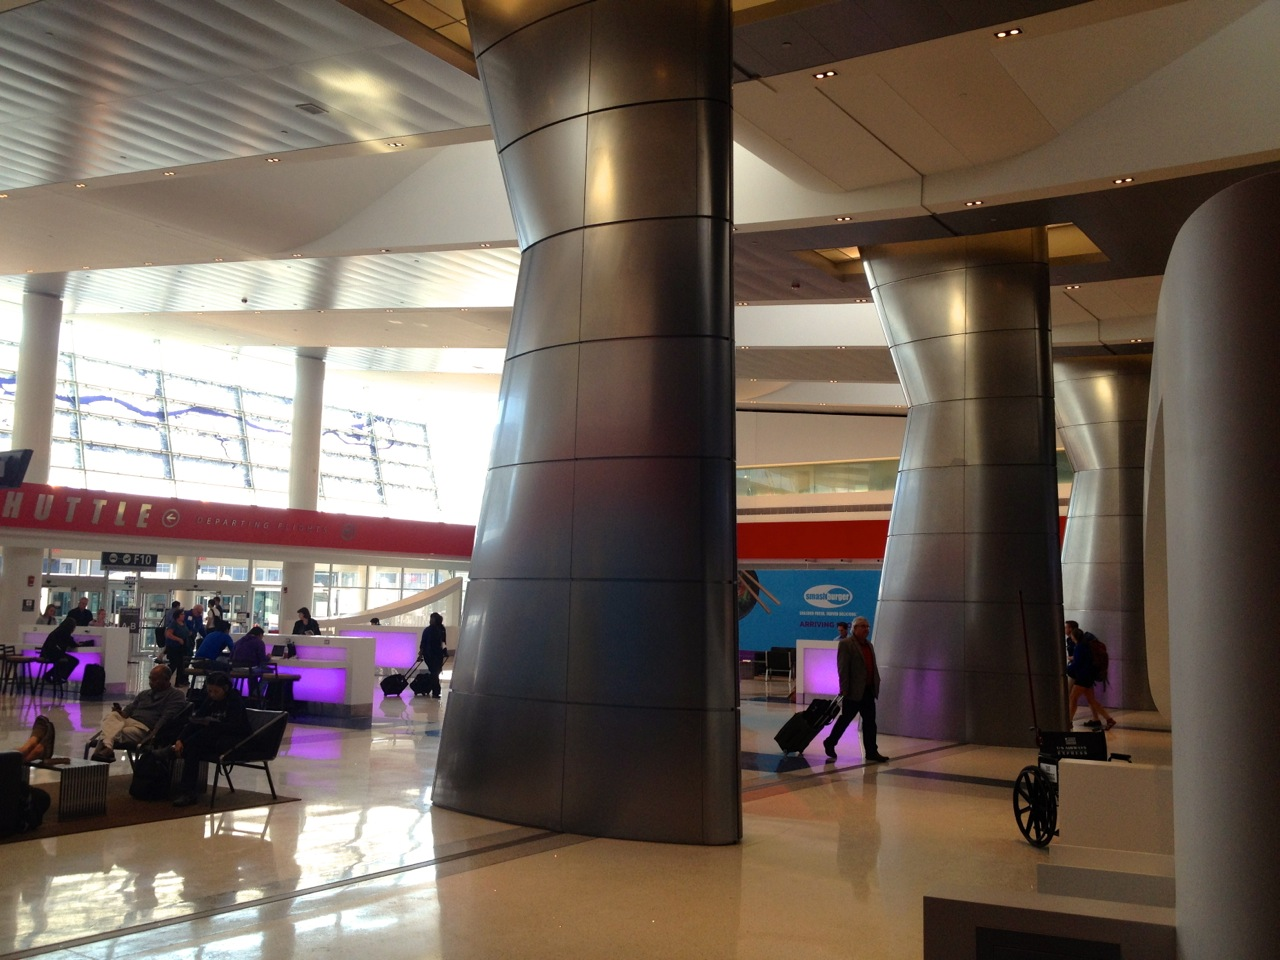 Philly_Terminal_F_9302